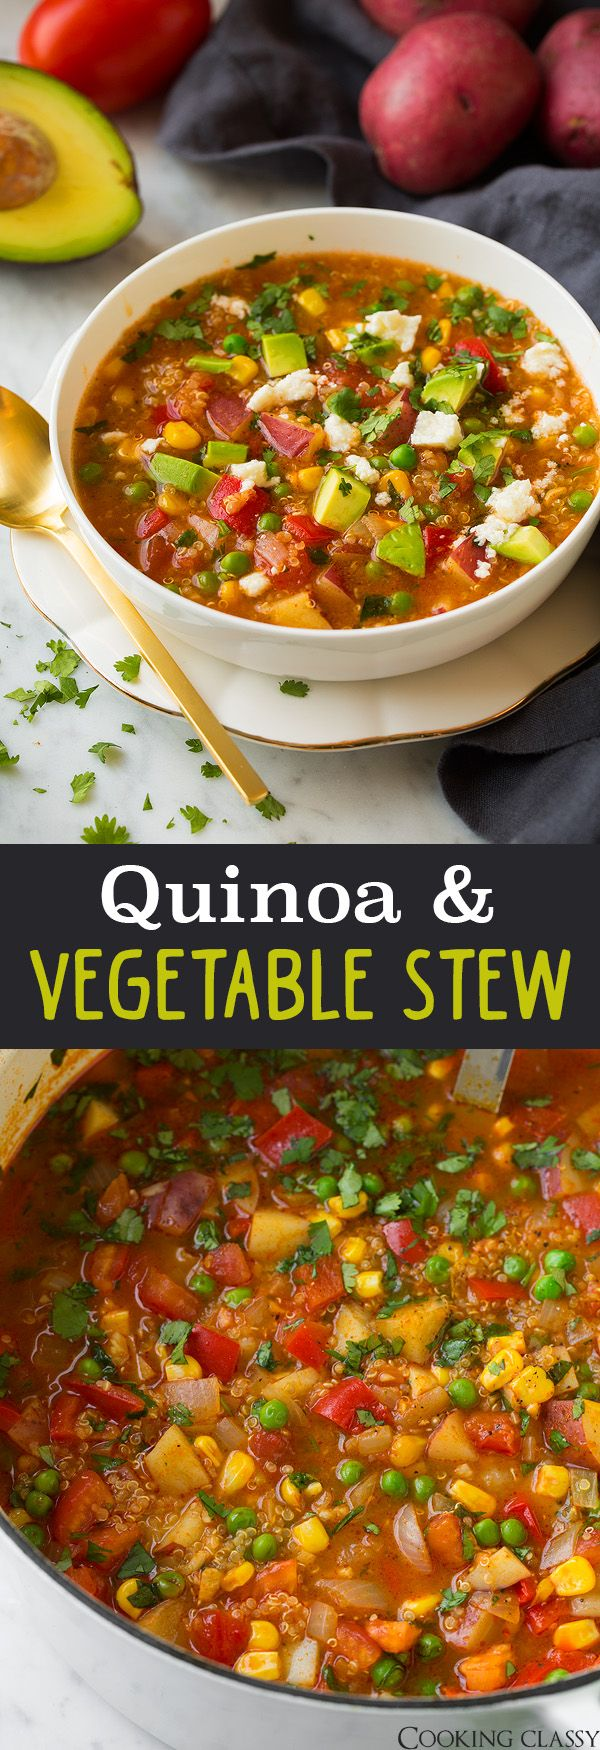 Quinoa and Vegetable Stew - Latin inspired soup that's packed with veggies! So good and even better the next day!